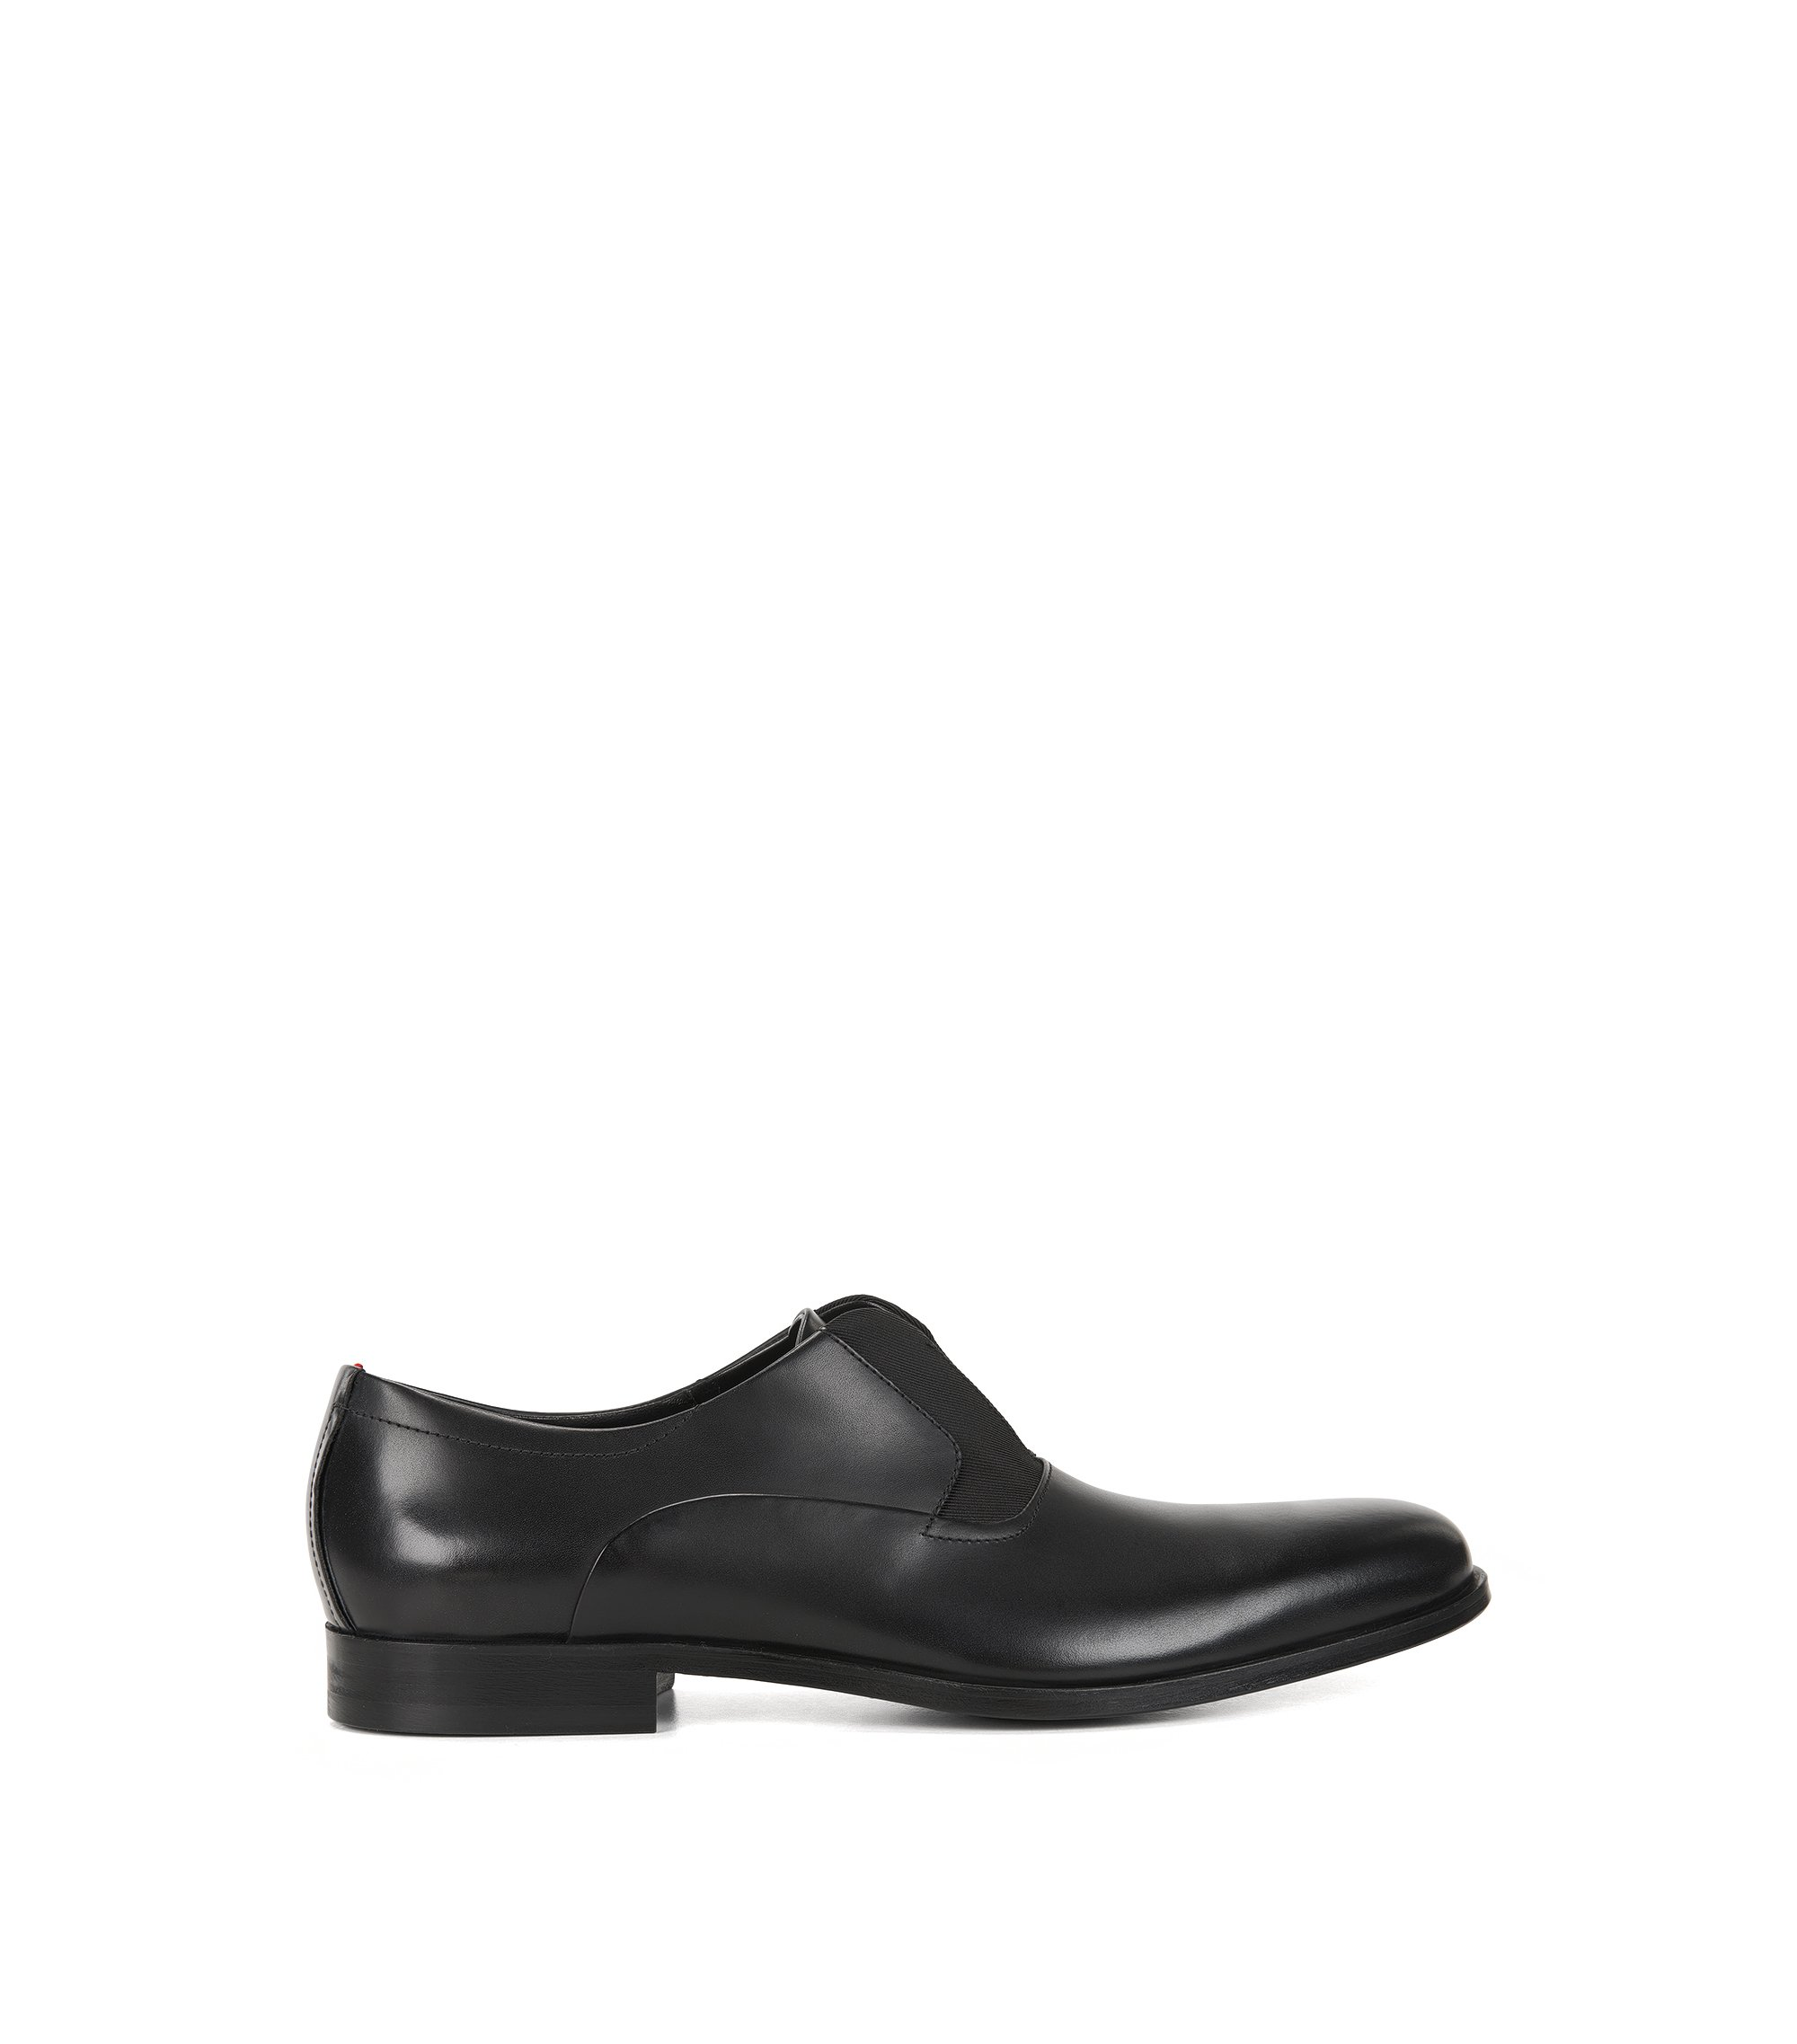 Slip-on Oxford shoes in leather, Black